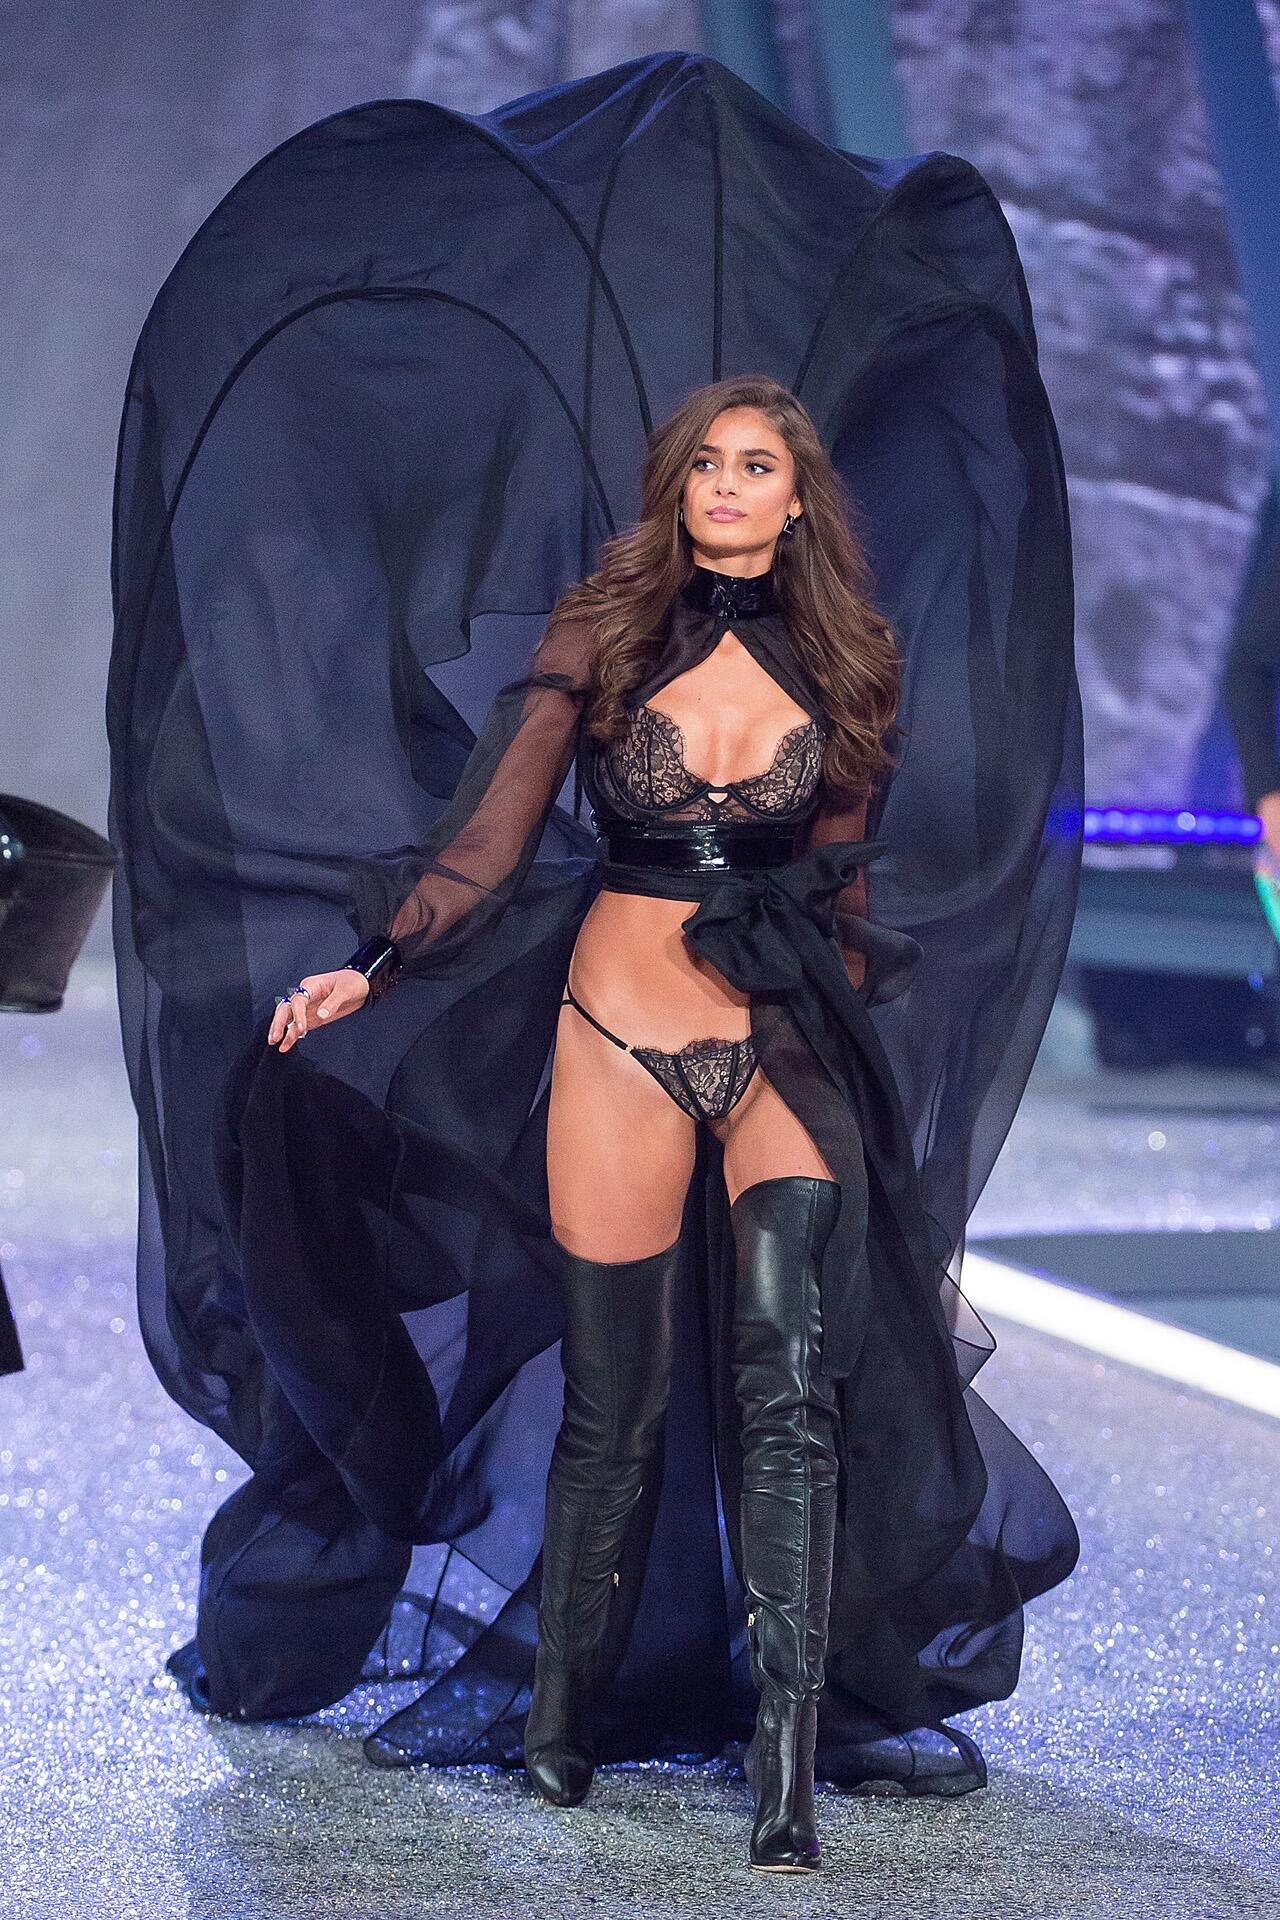 Bild zu Victoria's Secret, Paris 2016, Catwalk, Taylor Hill